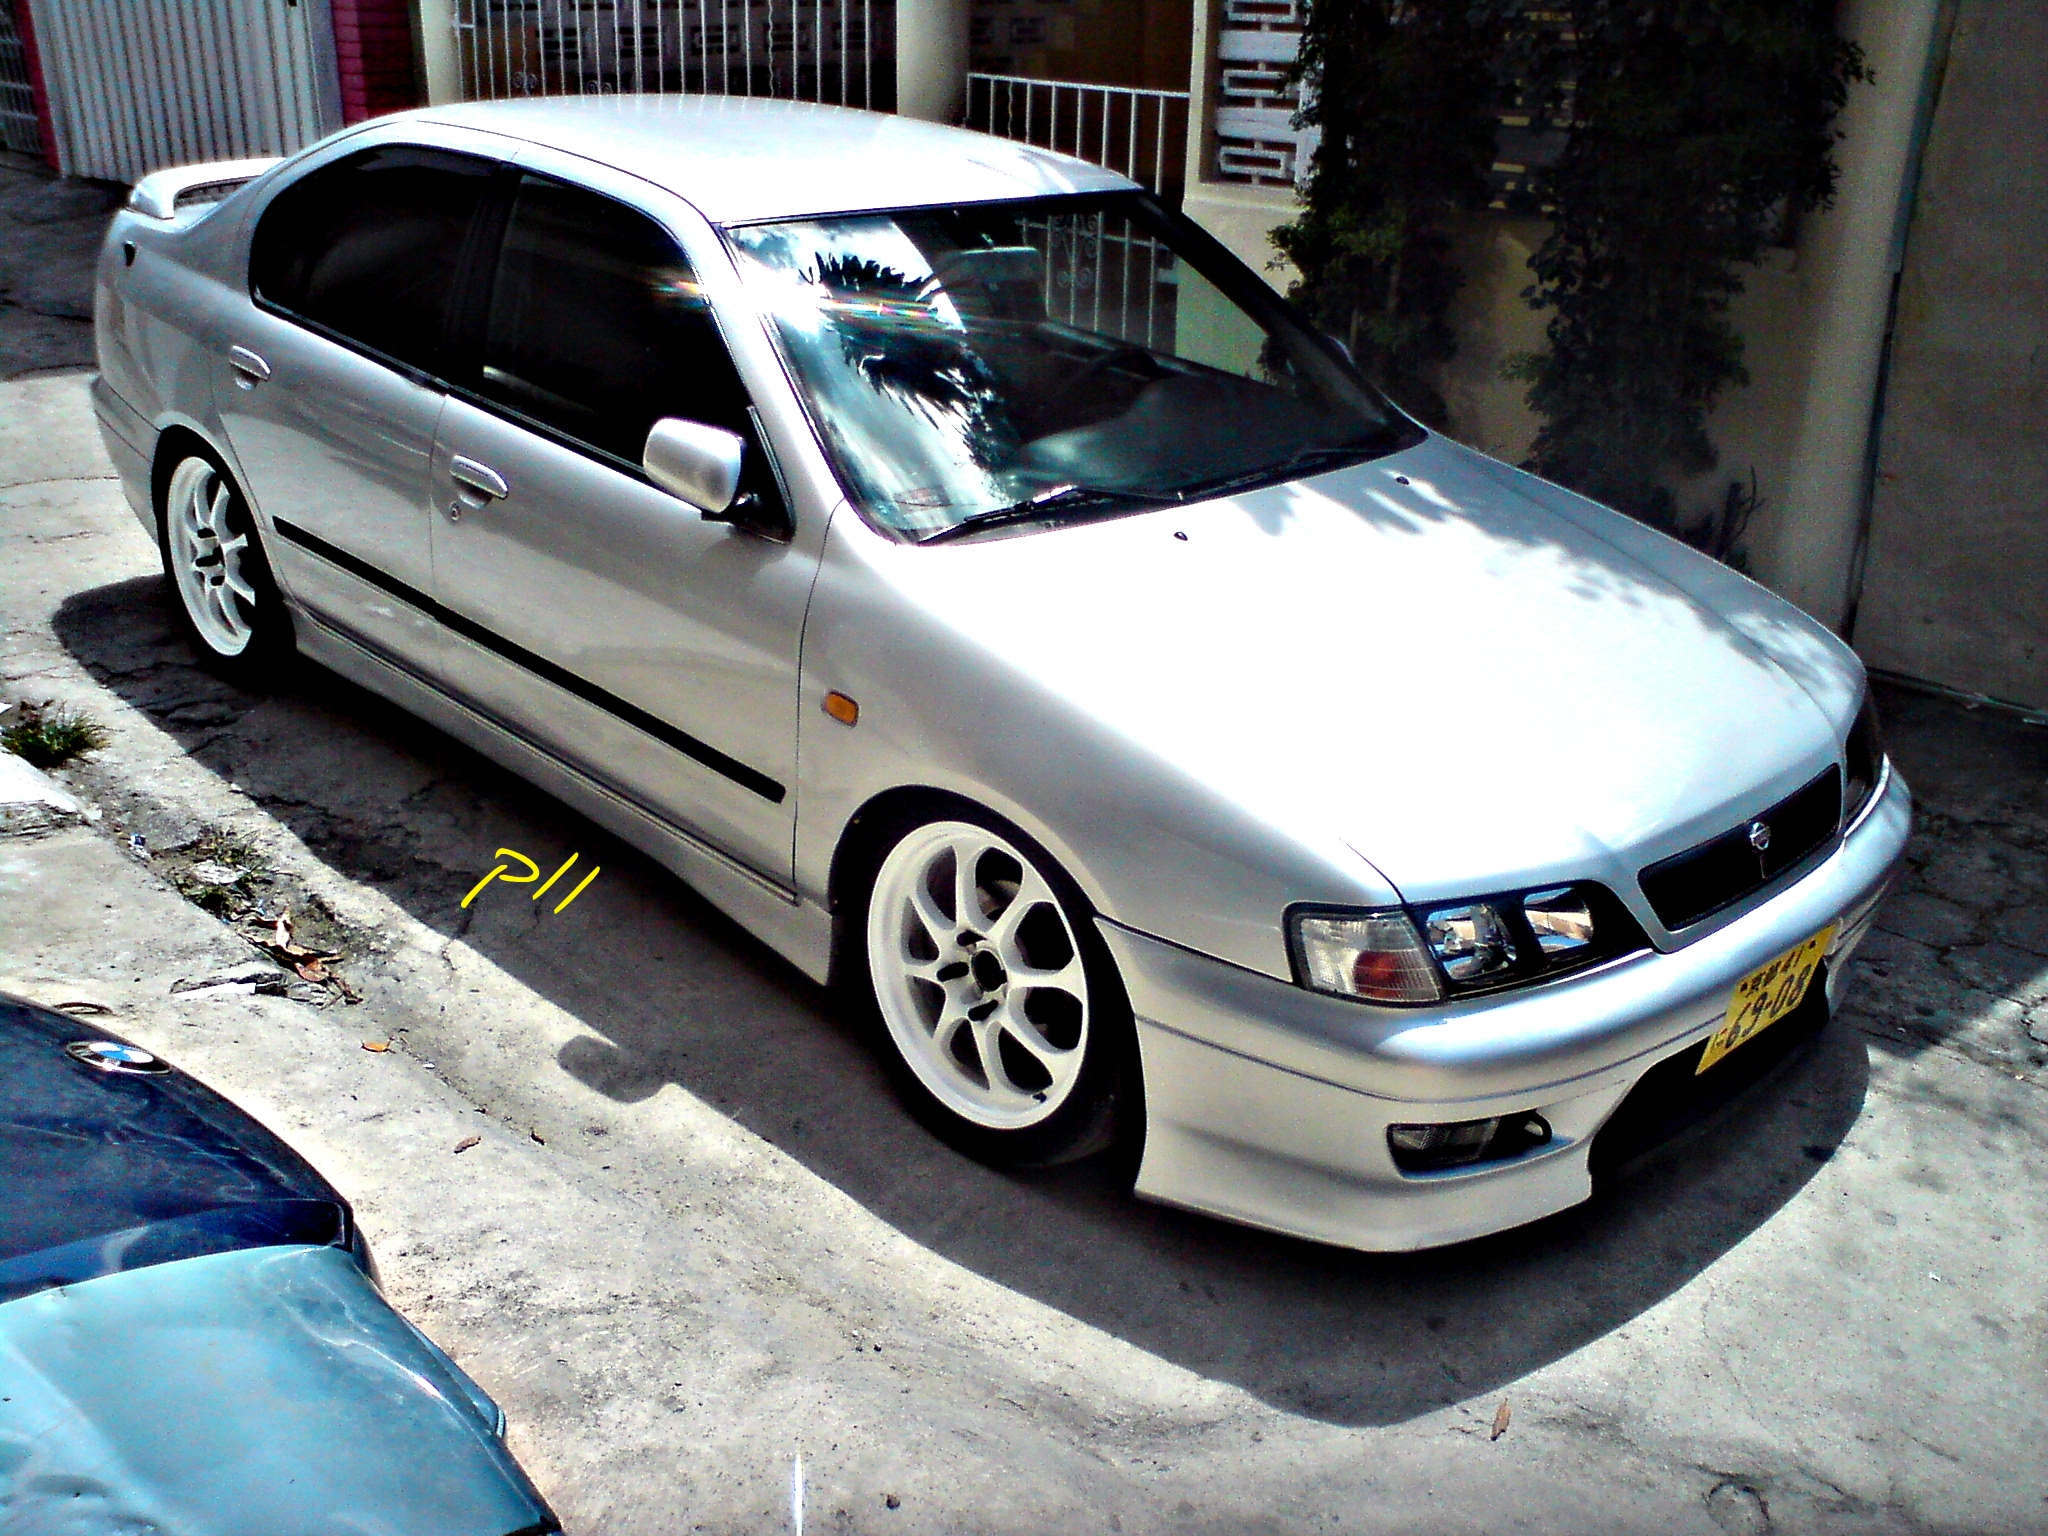 yasserp11 1996 Nissan Primera Specs, Photos, Modification Info at CarDomain